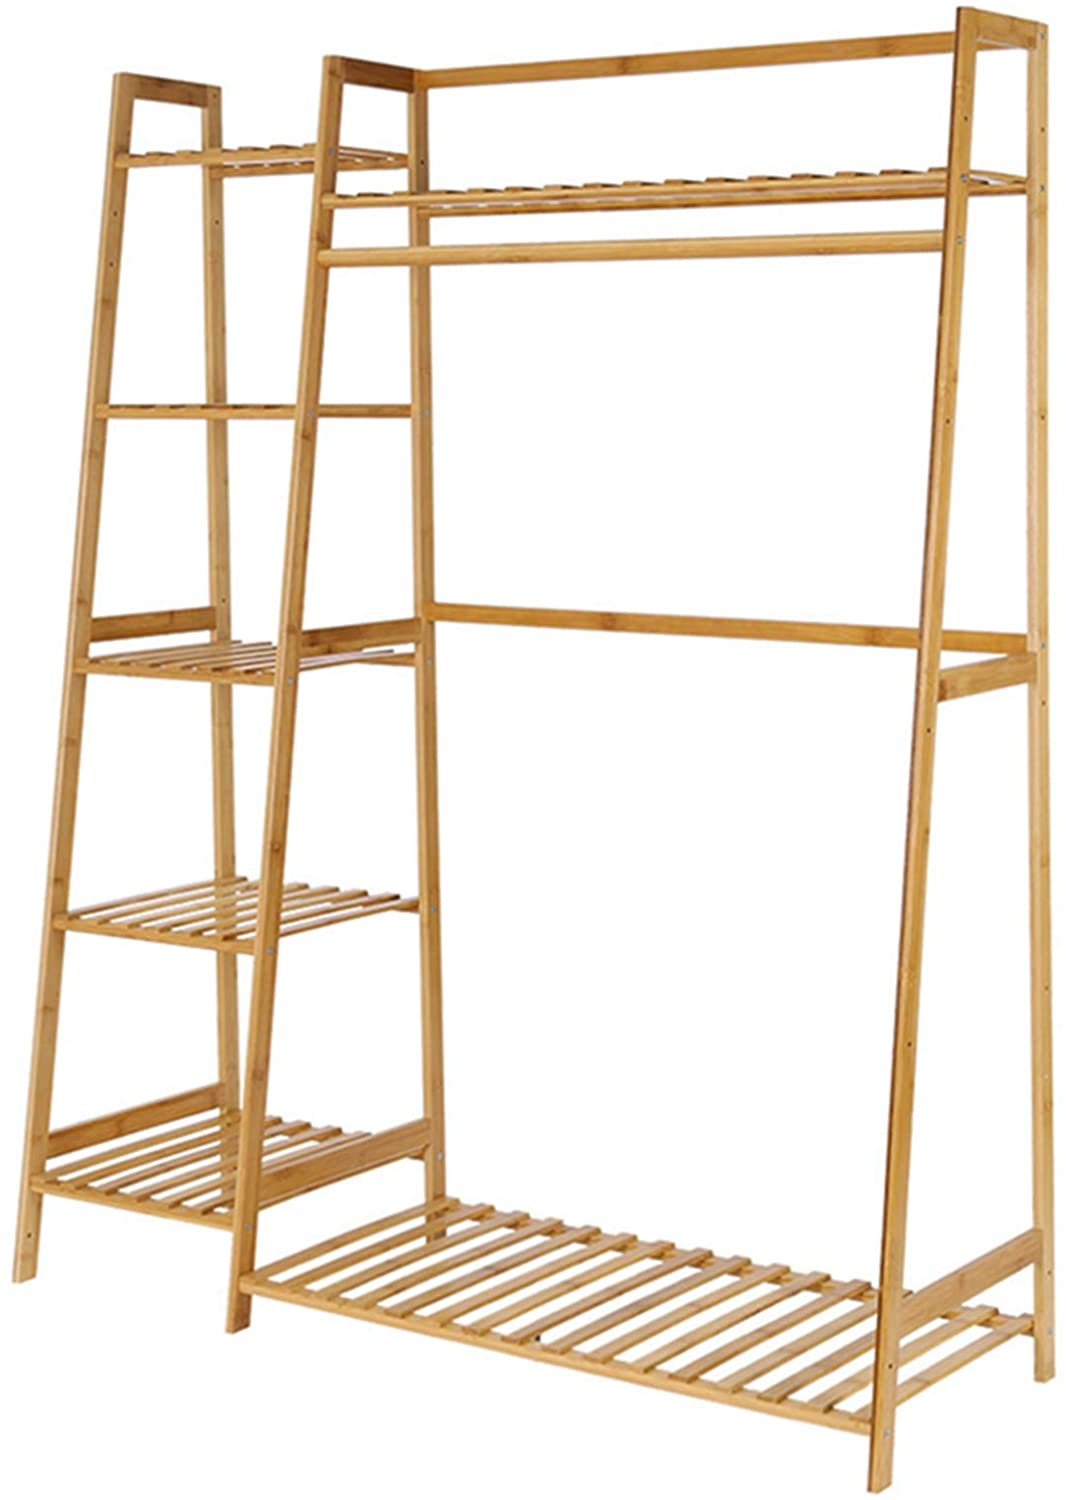 New Bamboo Garment Rack 5 Tier Shelves with Top Bamboo Shelf Coat Clothes Hanging Rack Multi-Function Rack with Storage Bench ndustrial Wood Furniture (Wood Color) (Wood Color)